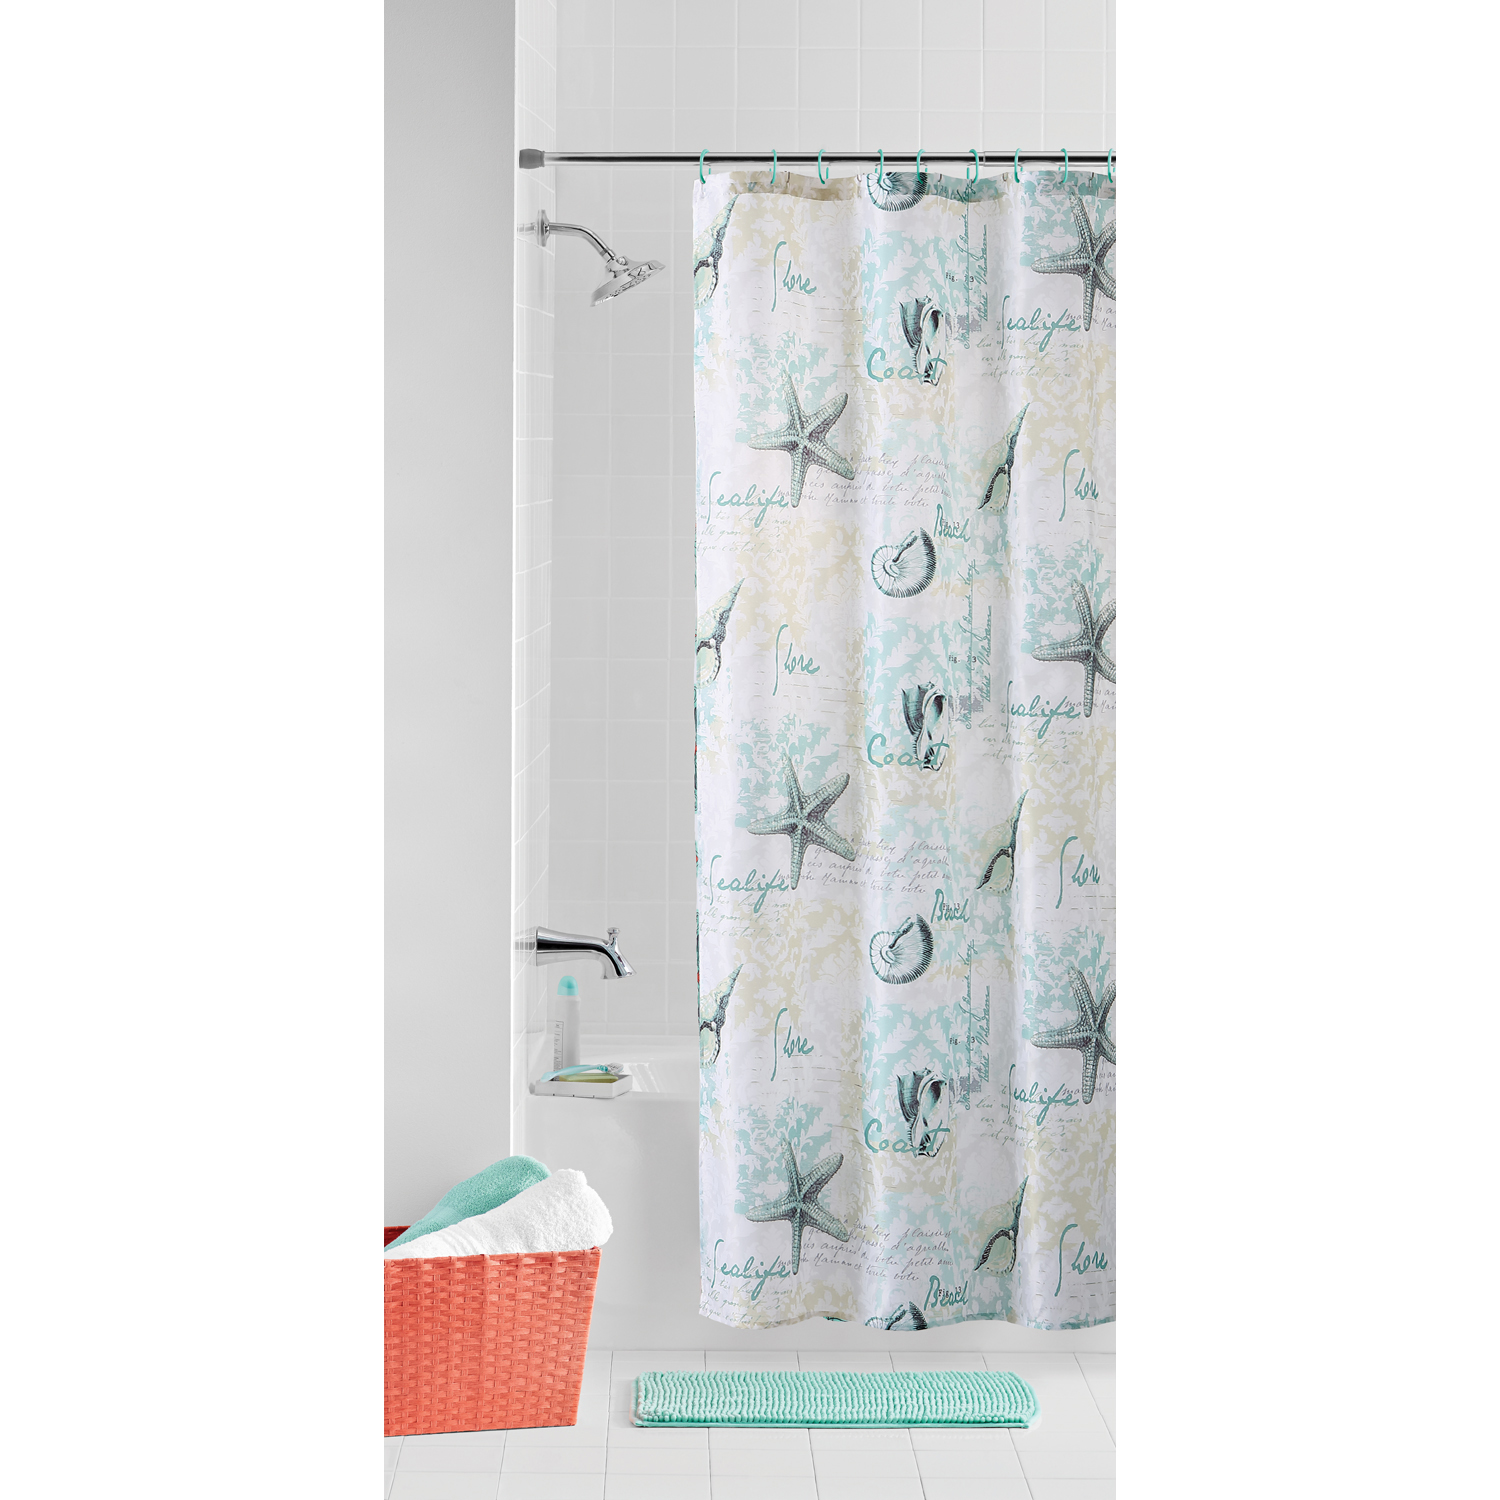 Mainstays 14 Piece Bath Set with Shower Curtain, Noodle ...